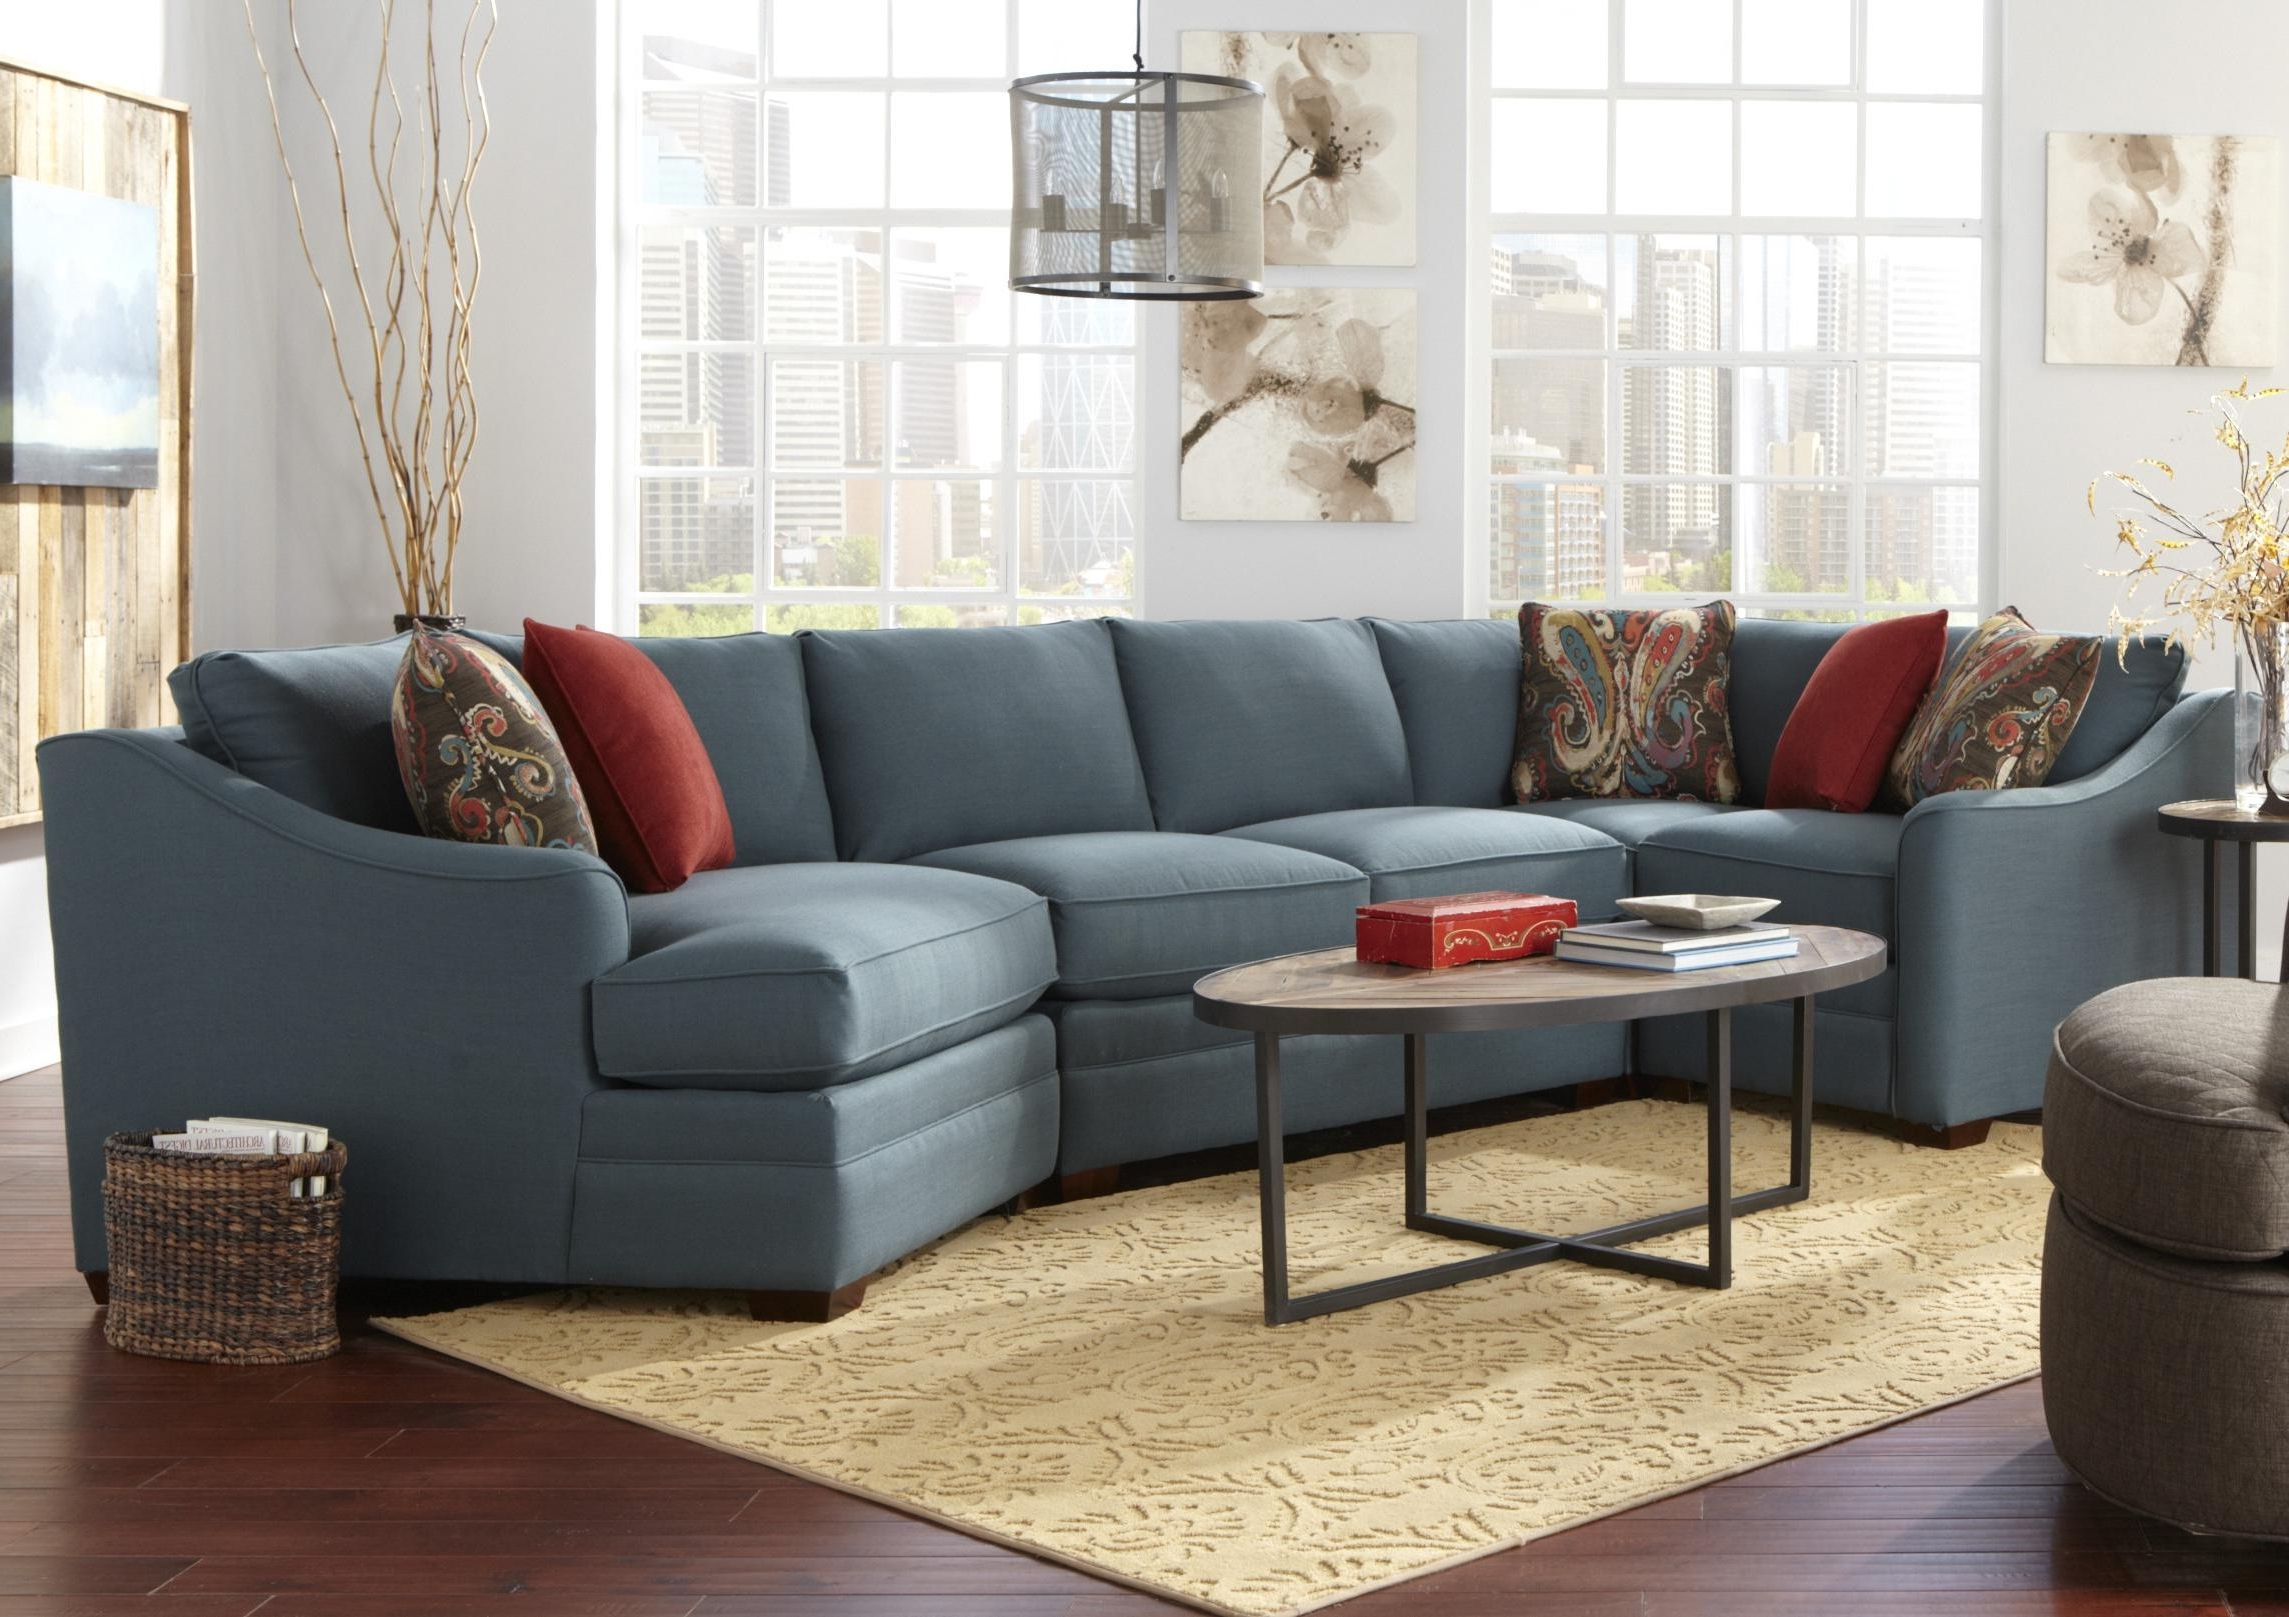 Marmsweb Within Well Known Sectional Sofas In Hyderabad (View 7 of 20)